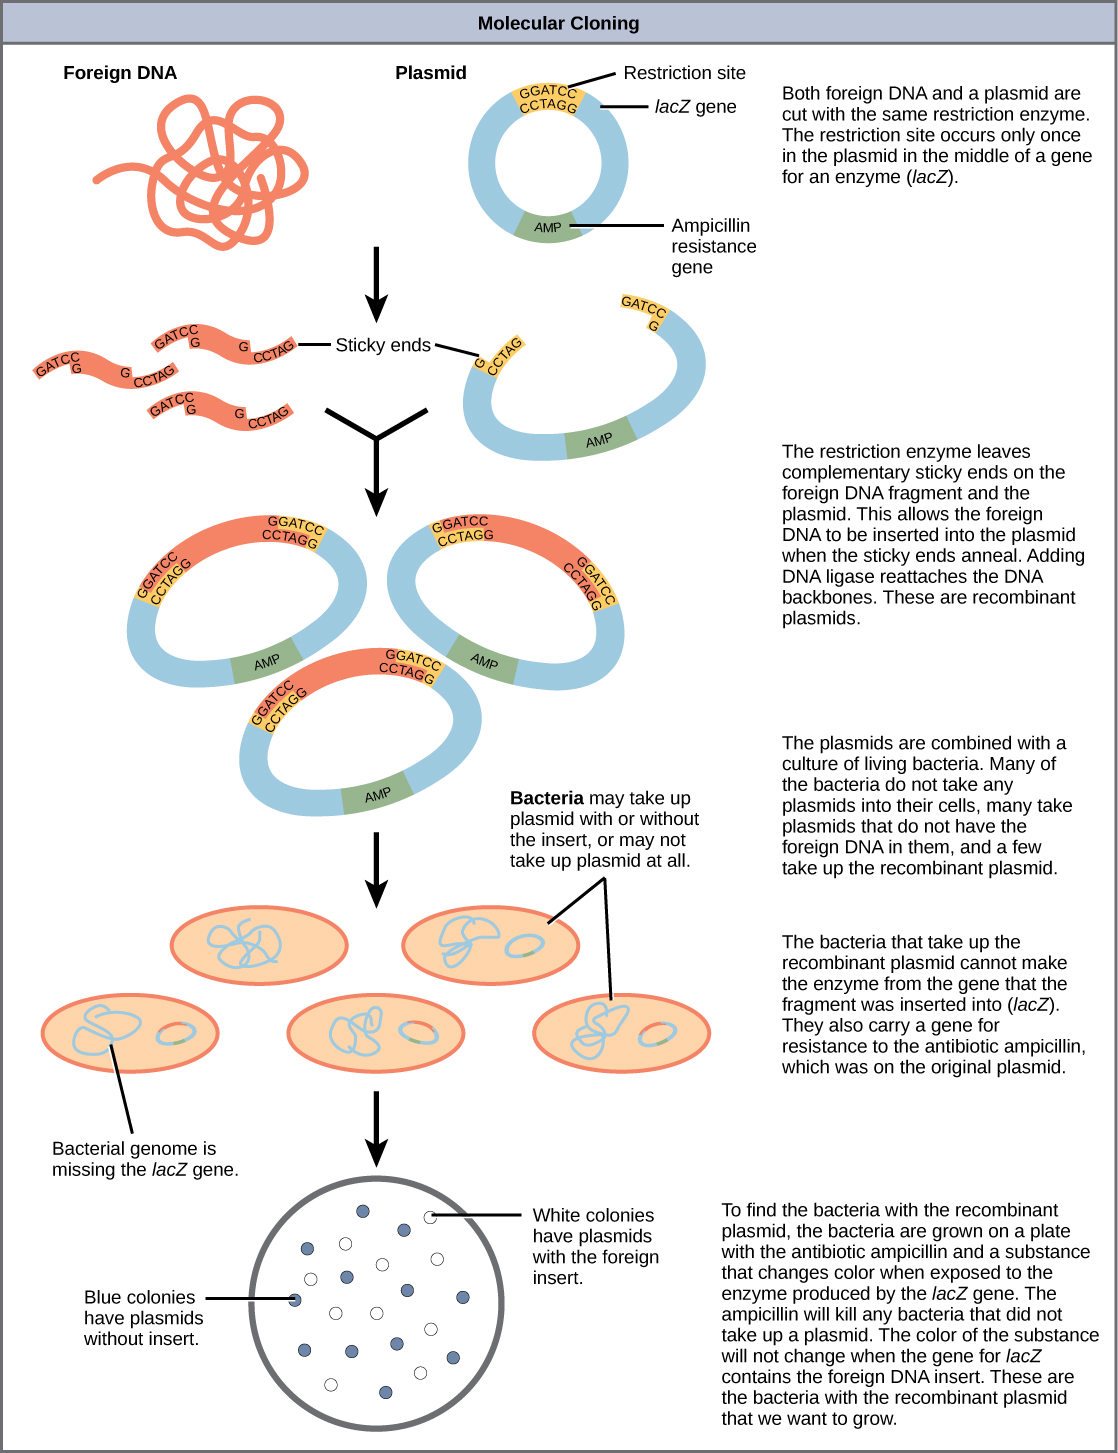 An illustration showing the steps in creating recombinant DNA plasmids,  inserting them into bacteria,